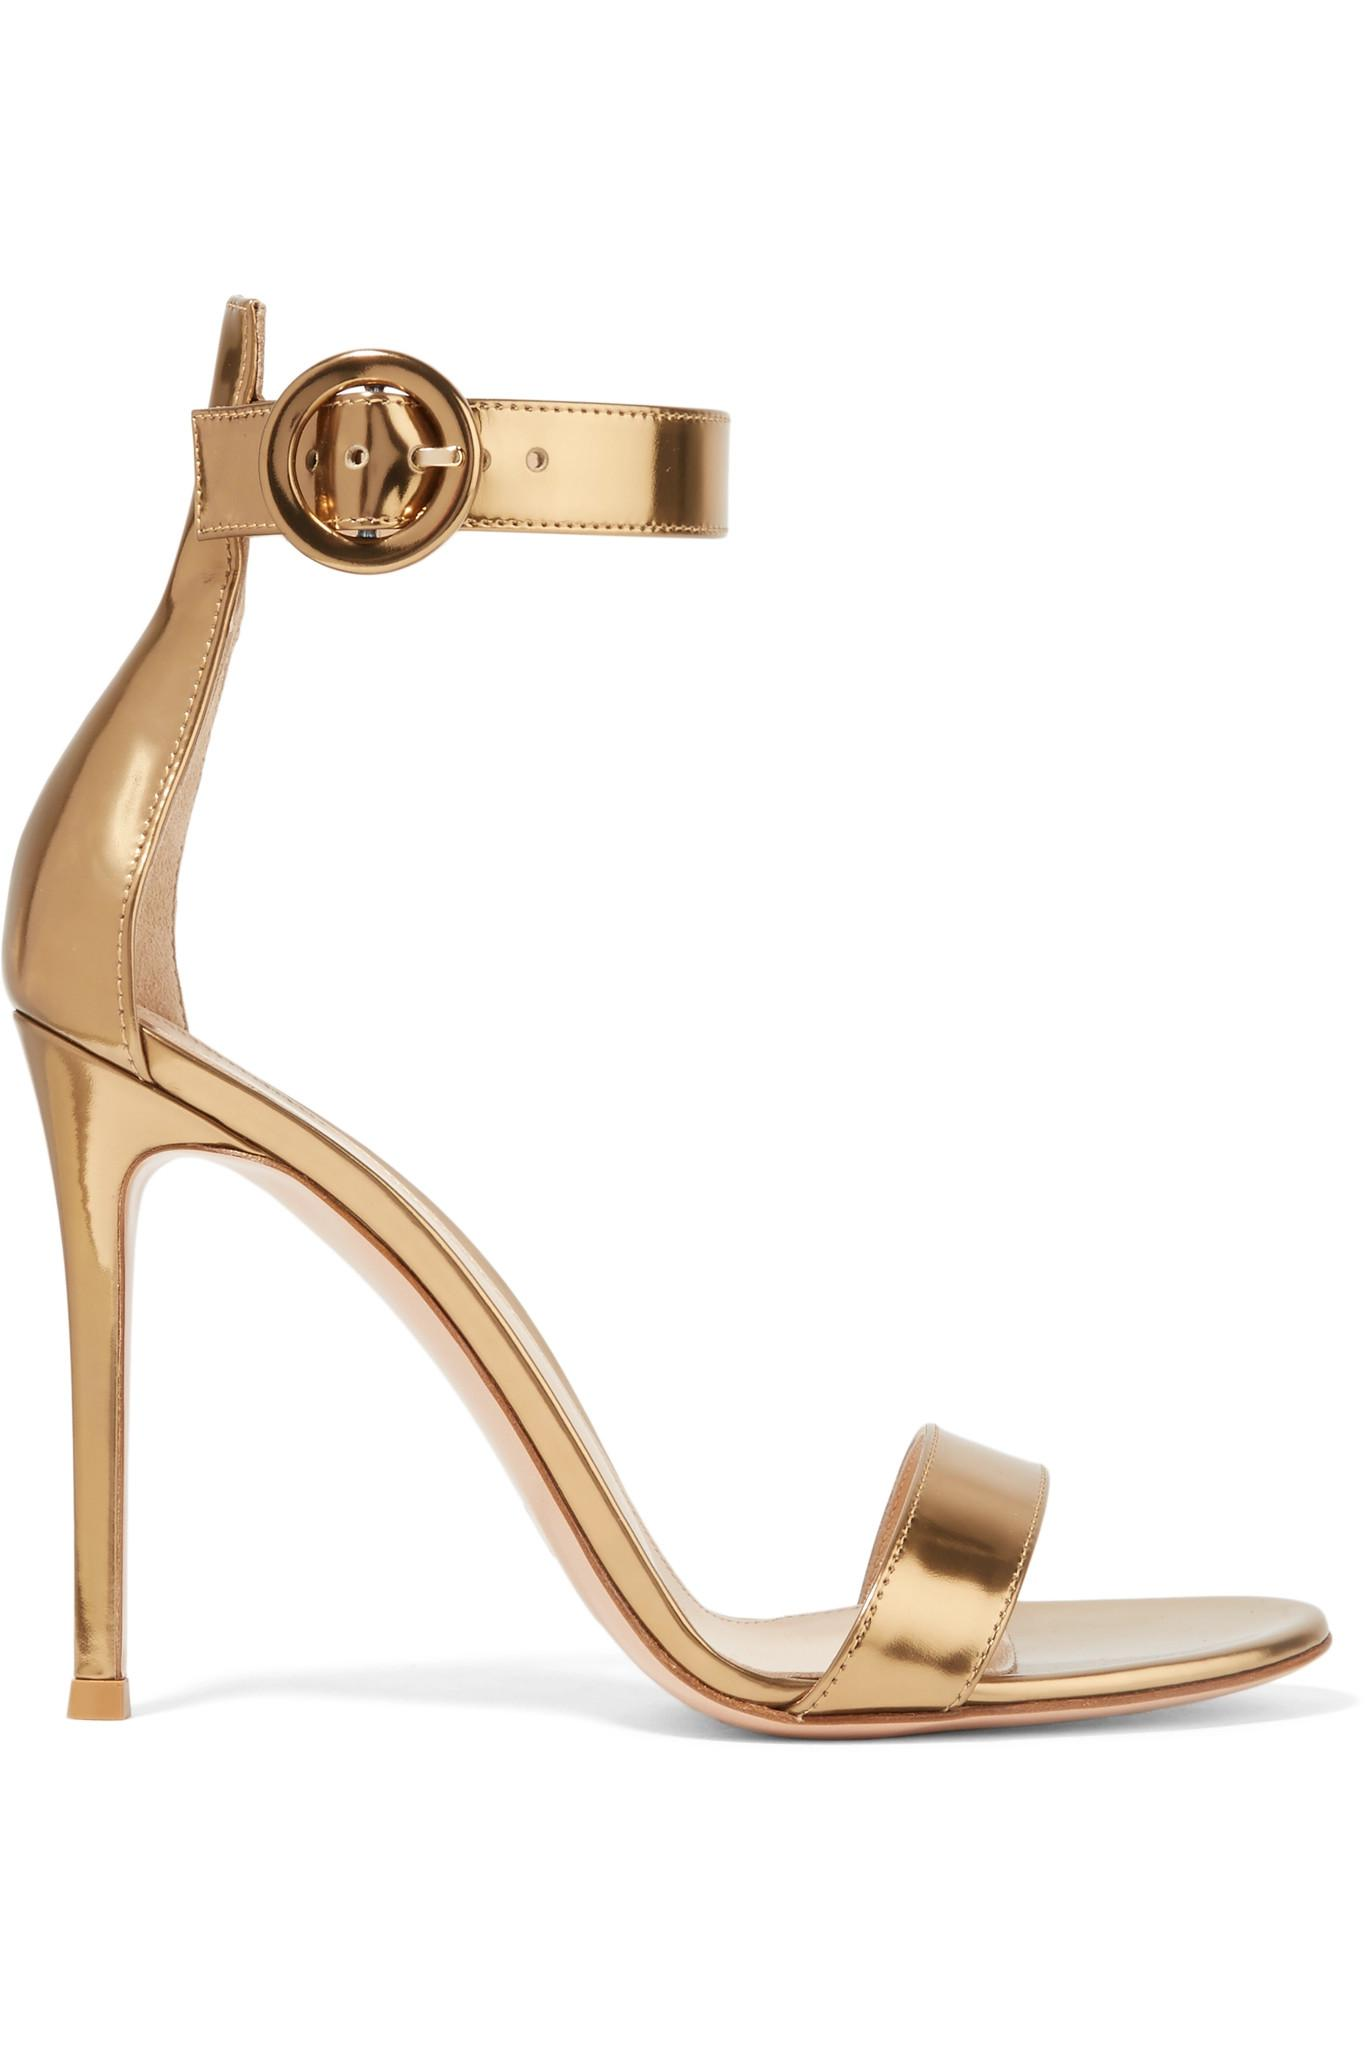 1117217516d2 Lyst - Gianvito Rossi Portofino 105 Metallic Leather Sandals in ...